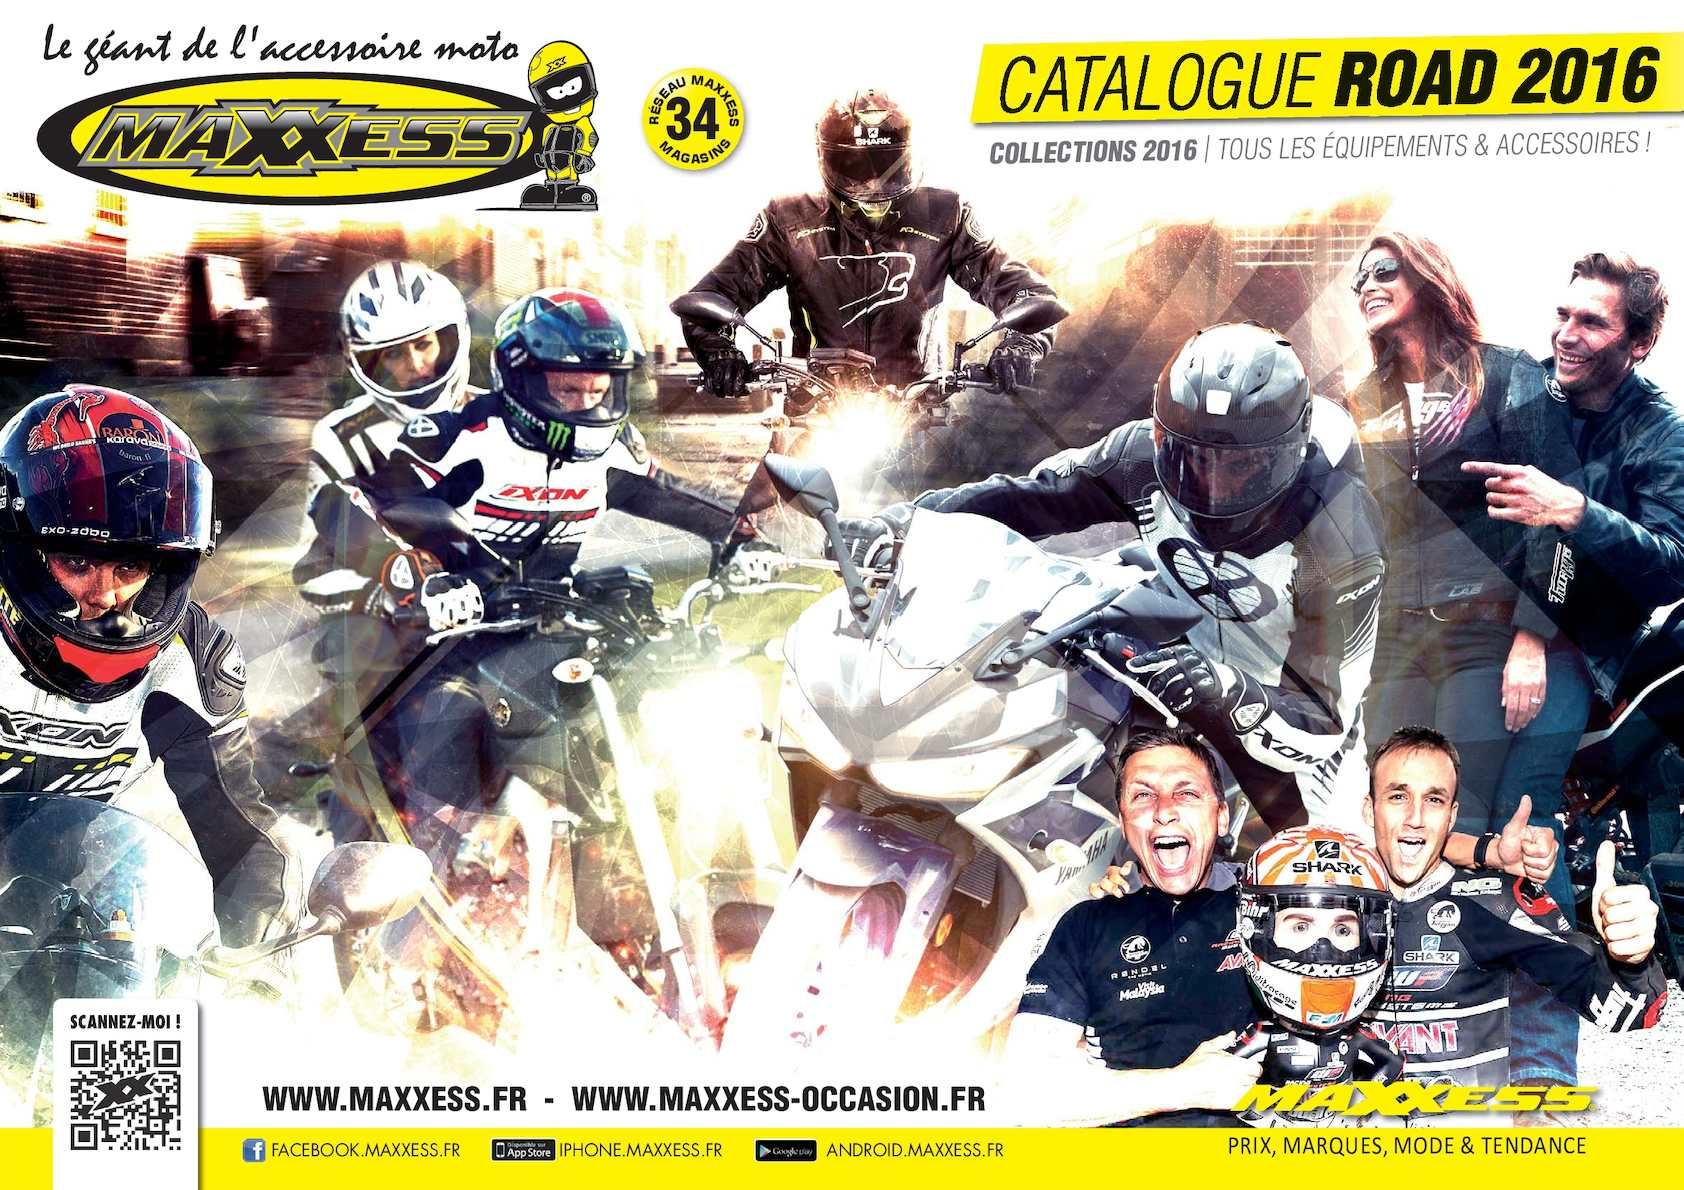 Catalogue MAXXESS ROAD 2016